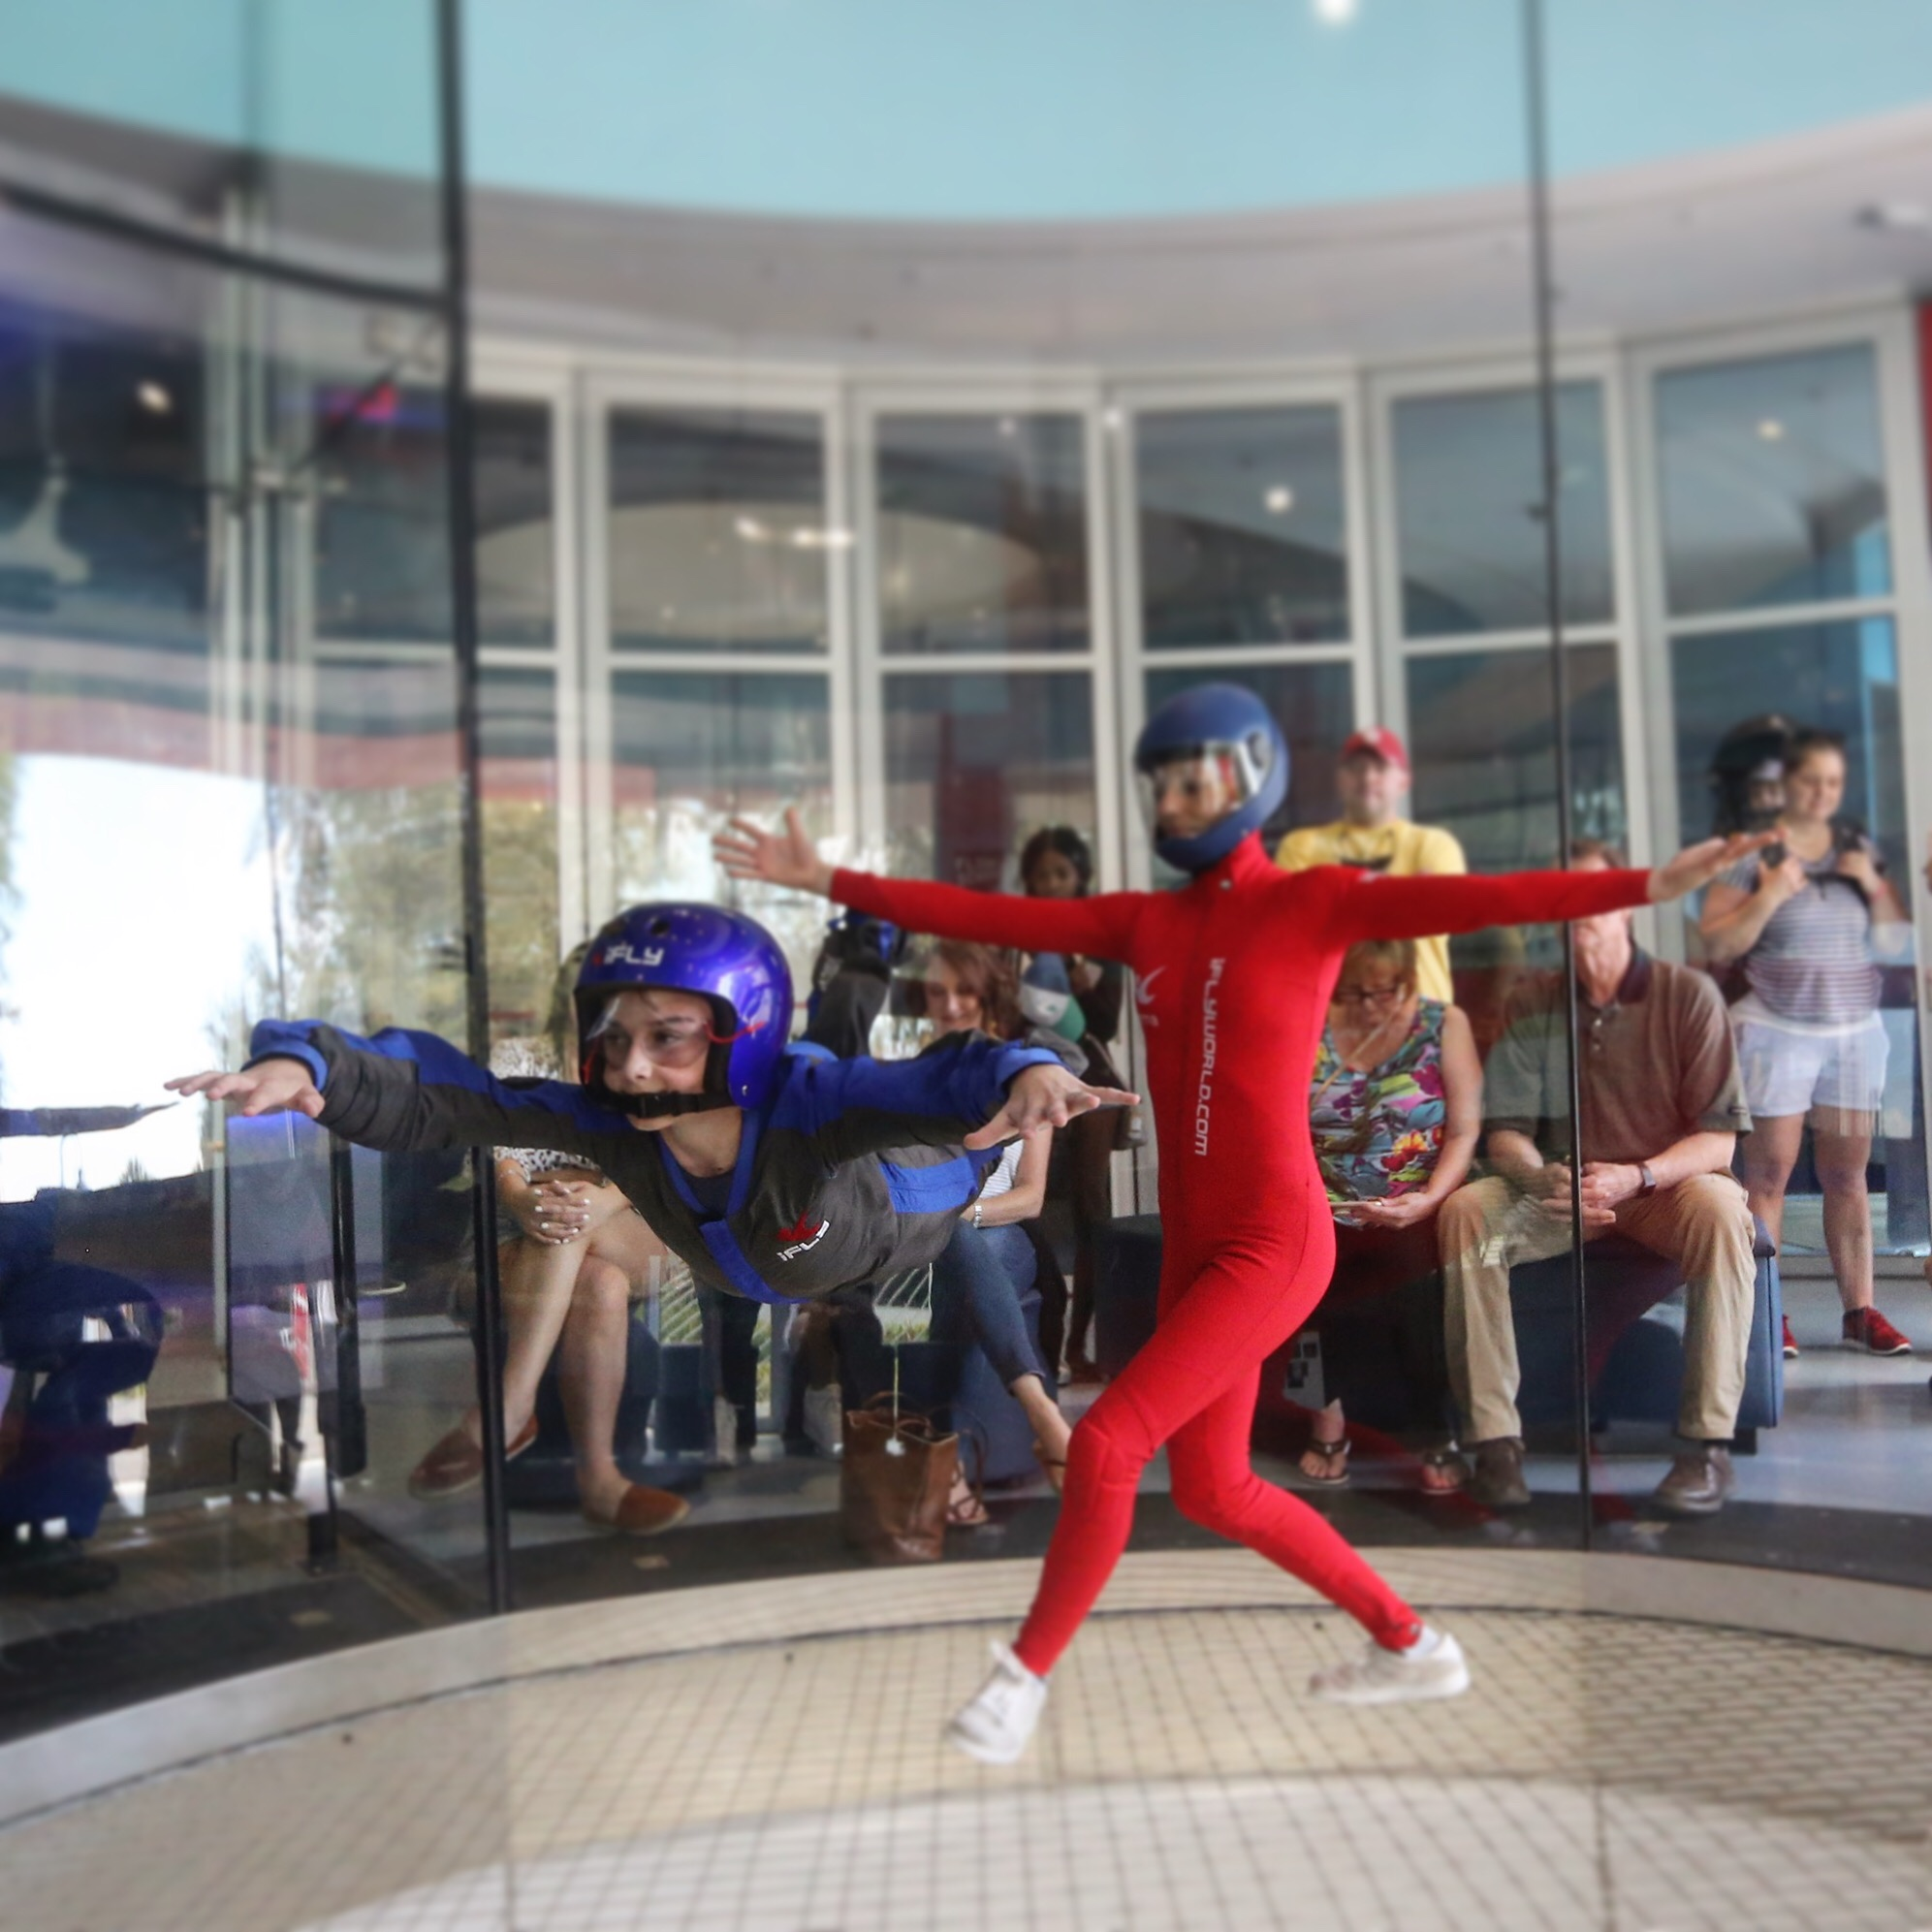 Enjoy a VR Flight alongside Dragons at iFly Orlando